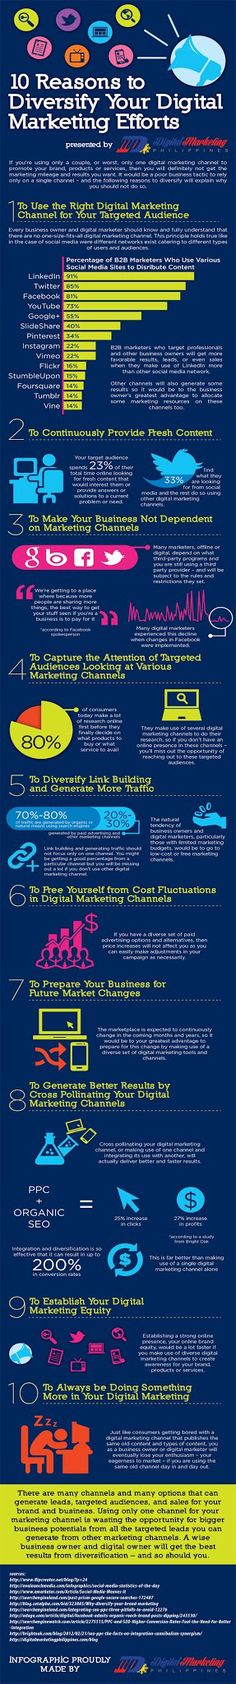 10 Reasons To Diversify Your Digital Marketing Efforts.  #Infographic #Digital #Marketing